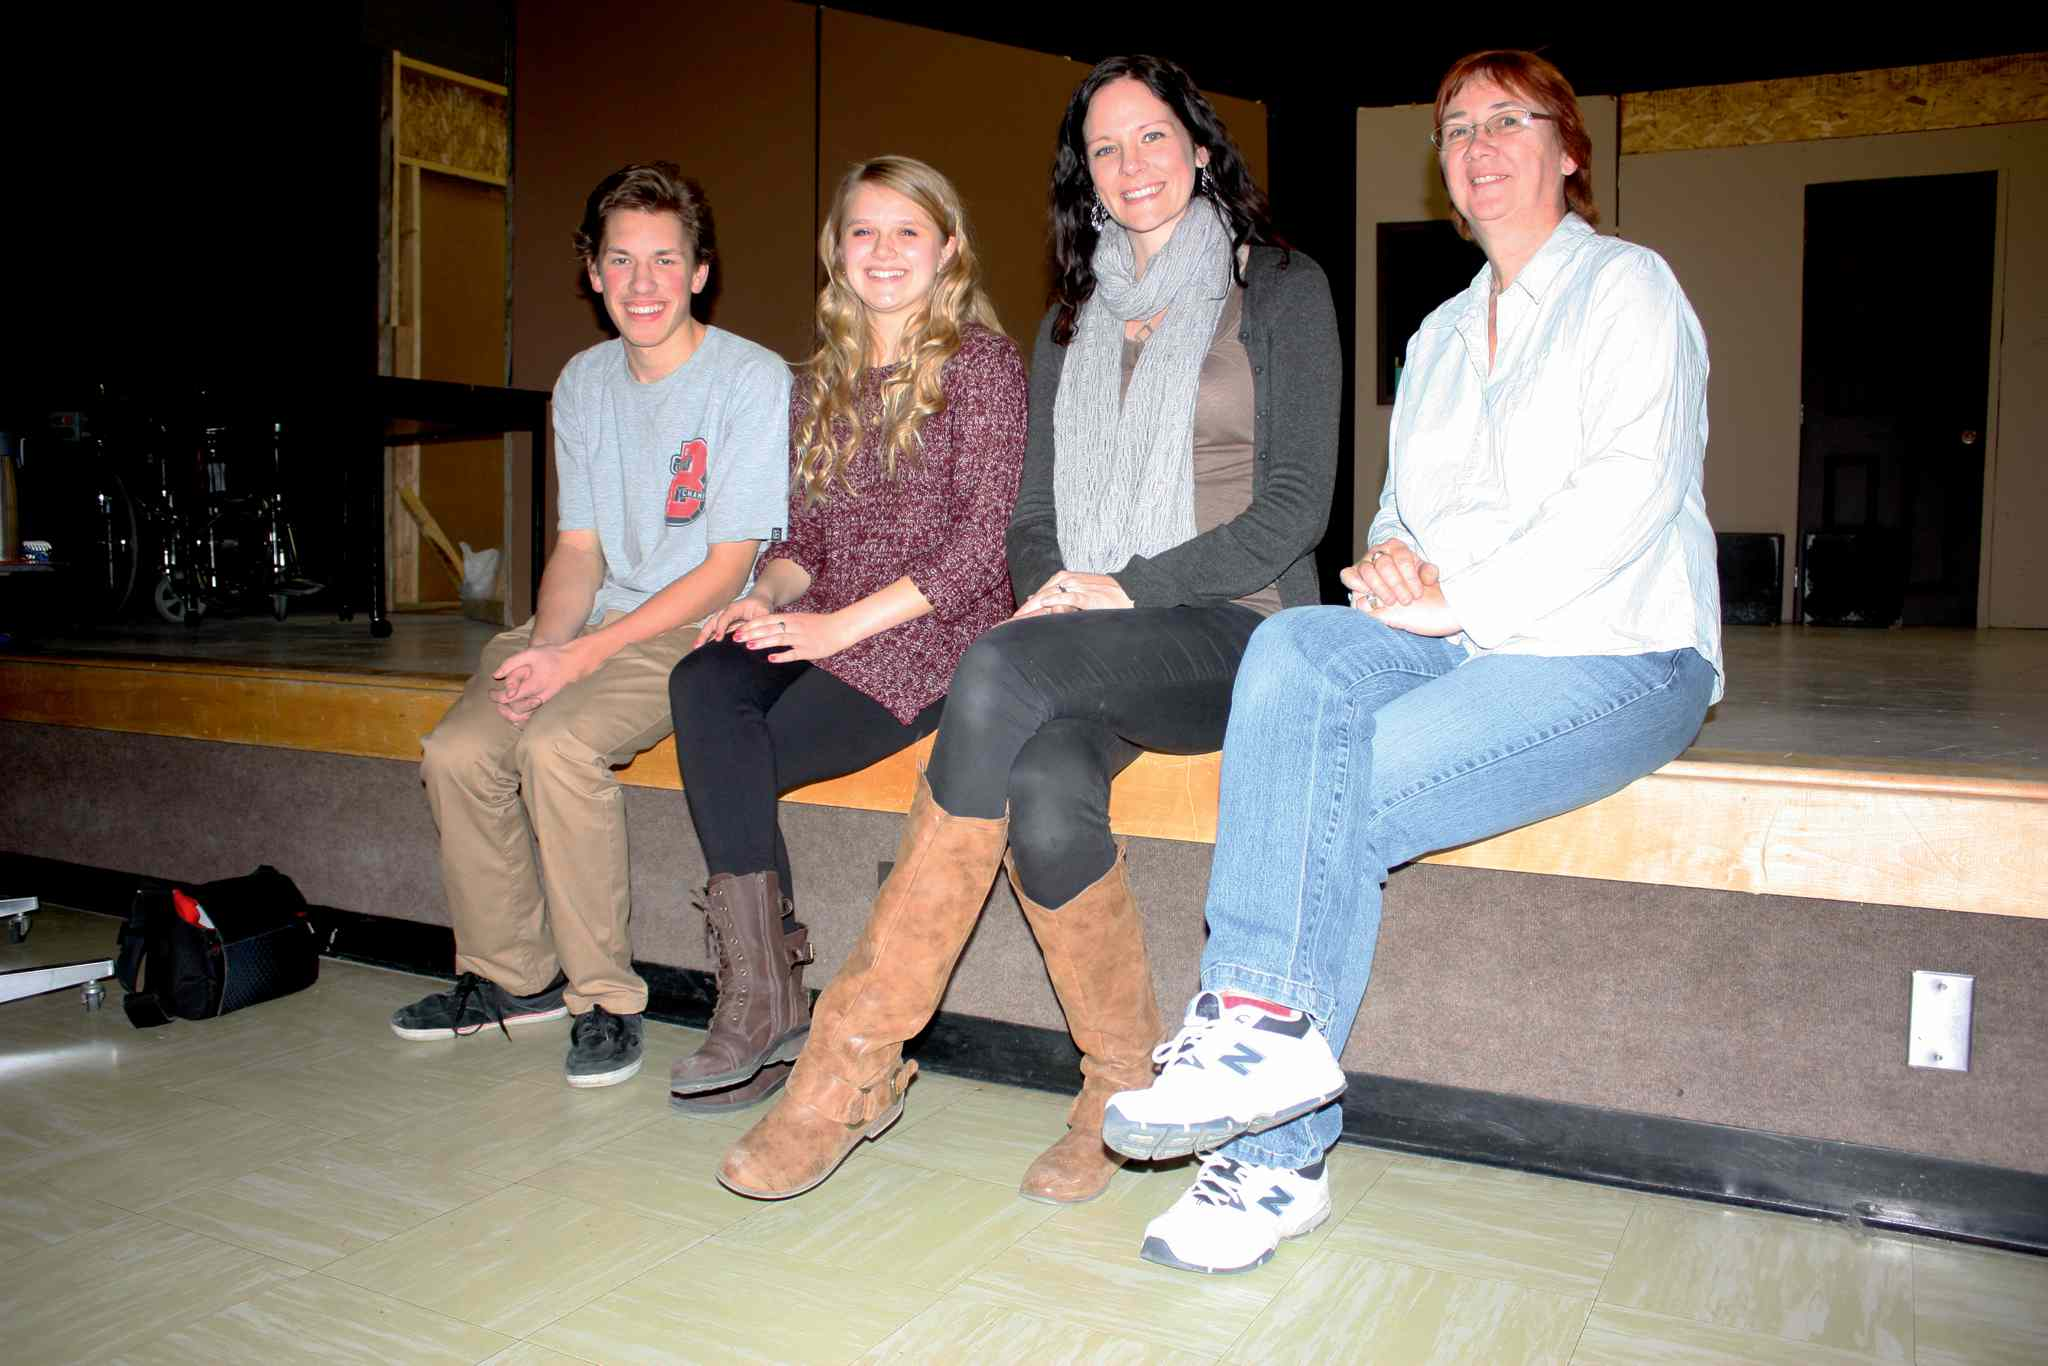 Radium Girls leads Harlan Billson and Sydney Small, director Carrie Gillis, and assistant director Shelley Lichtman are shown. Miles Macdonell Collegiate will stage the play in December.